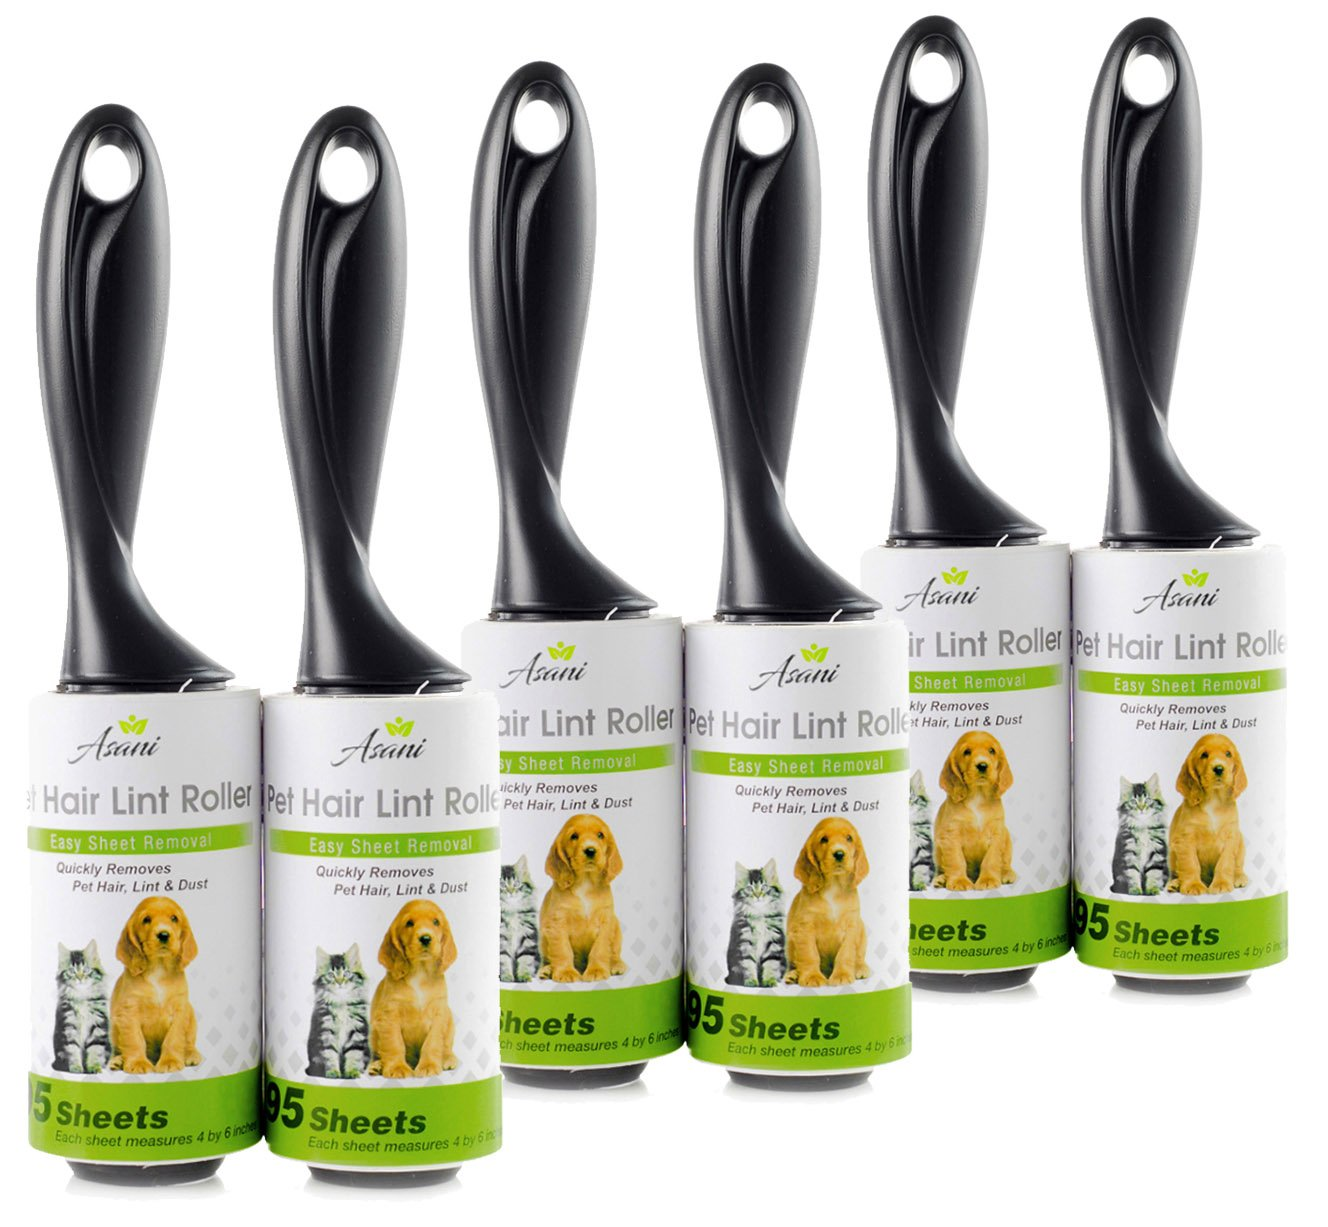 Pet Hair Lint Roller Stick w/ Super Sticky Adhesive (6Pack) | Residue-Free Pet Hair Remover Tool | Easy-Tear Sheets | Professional Lint Rollers for Clothes, Furniture, Upholstery | 570 Sheets in Total by Asani